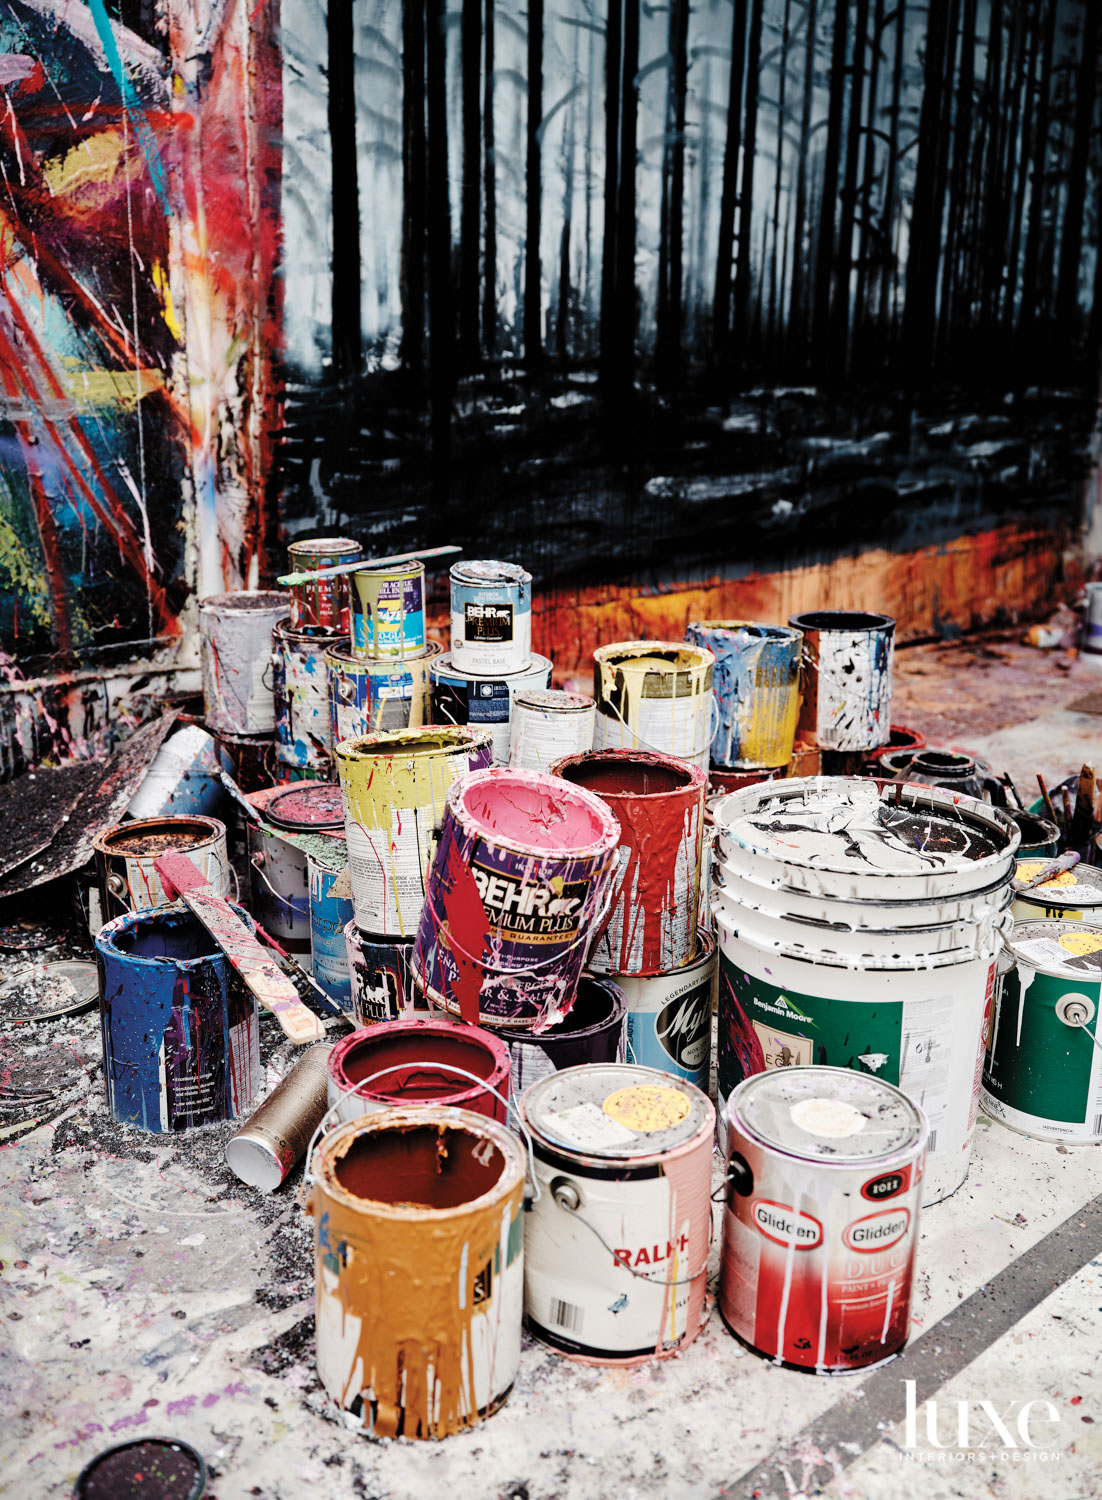 A group of paint cans in the artist's studio.